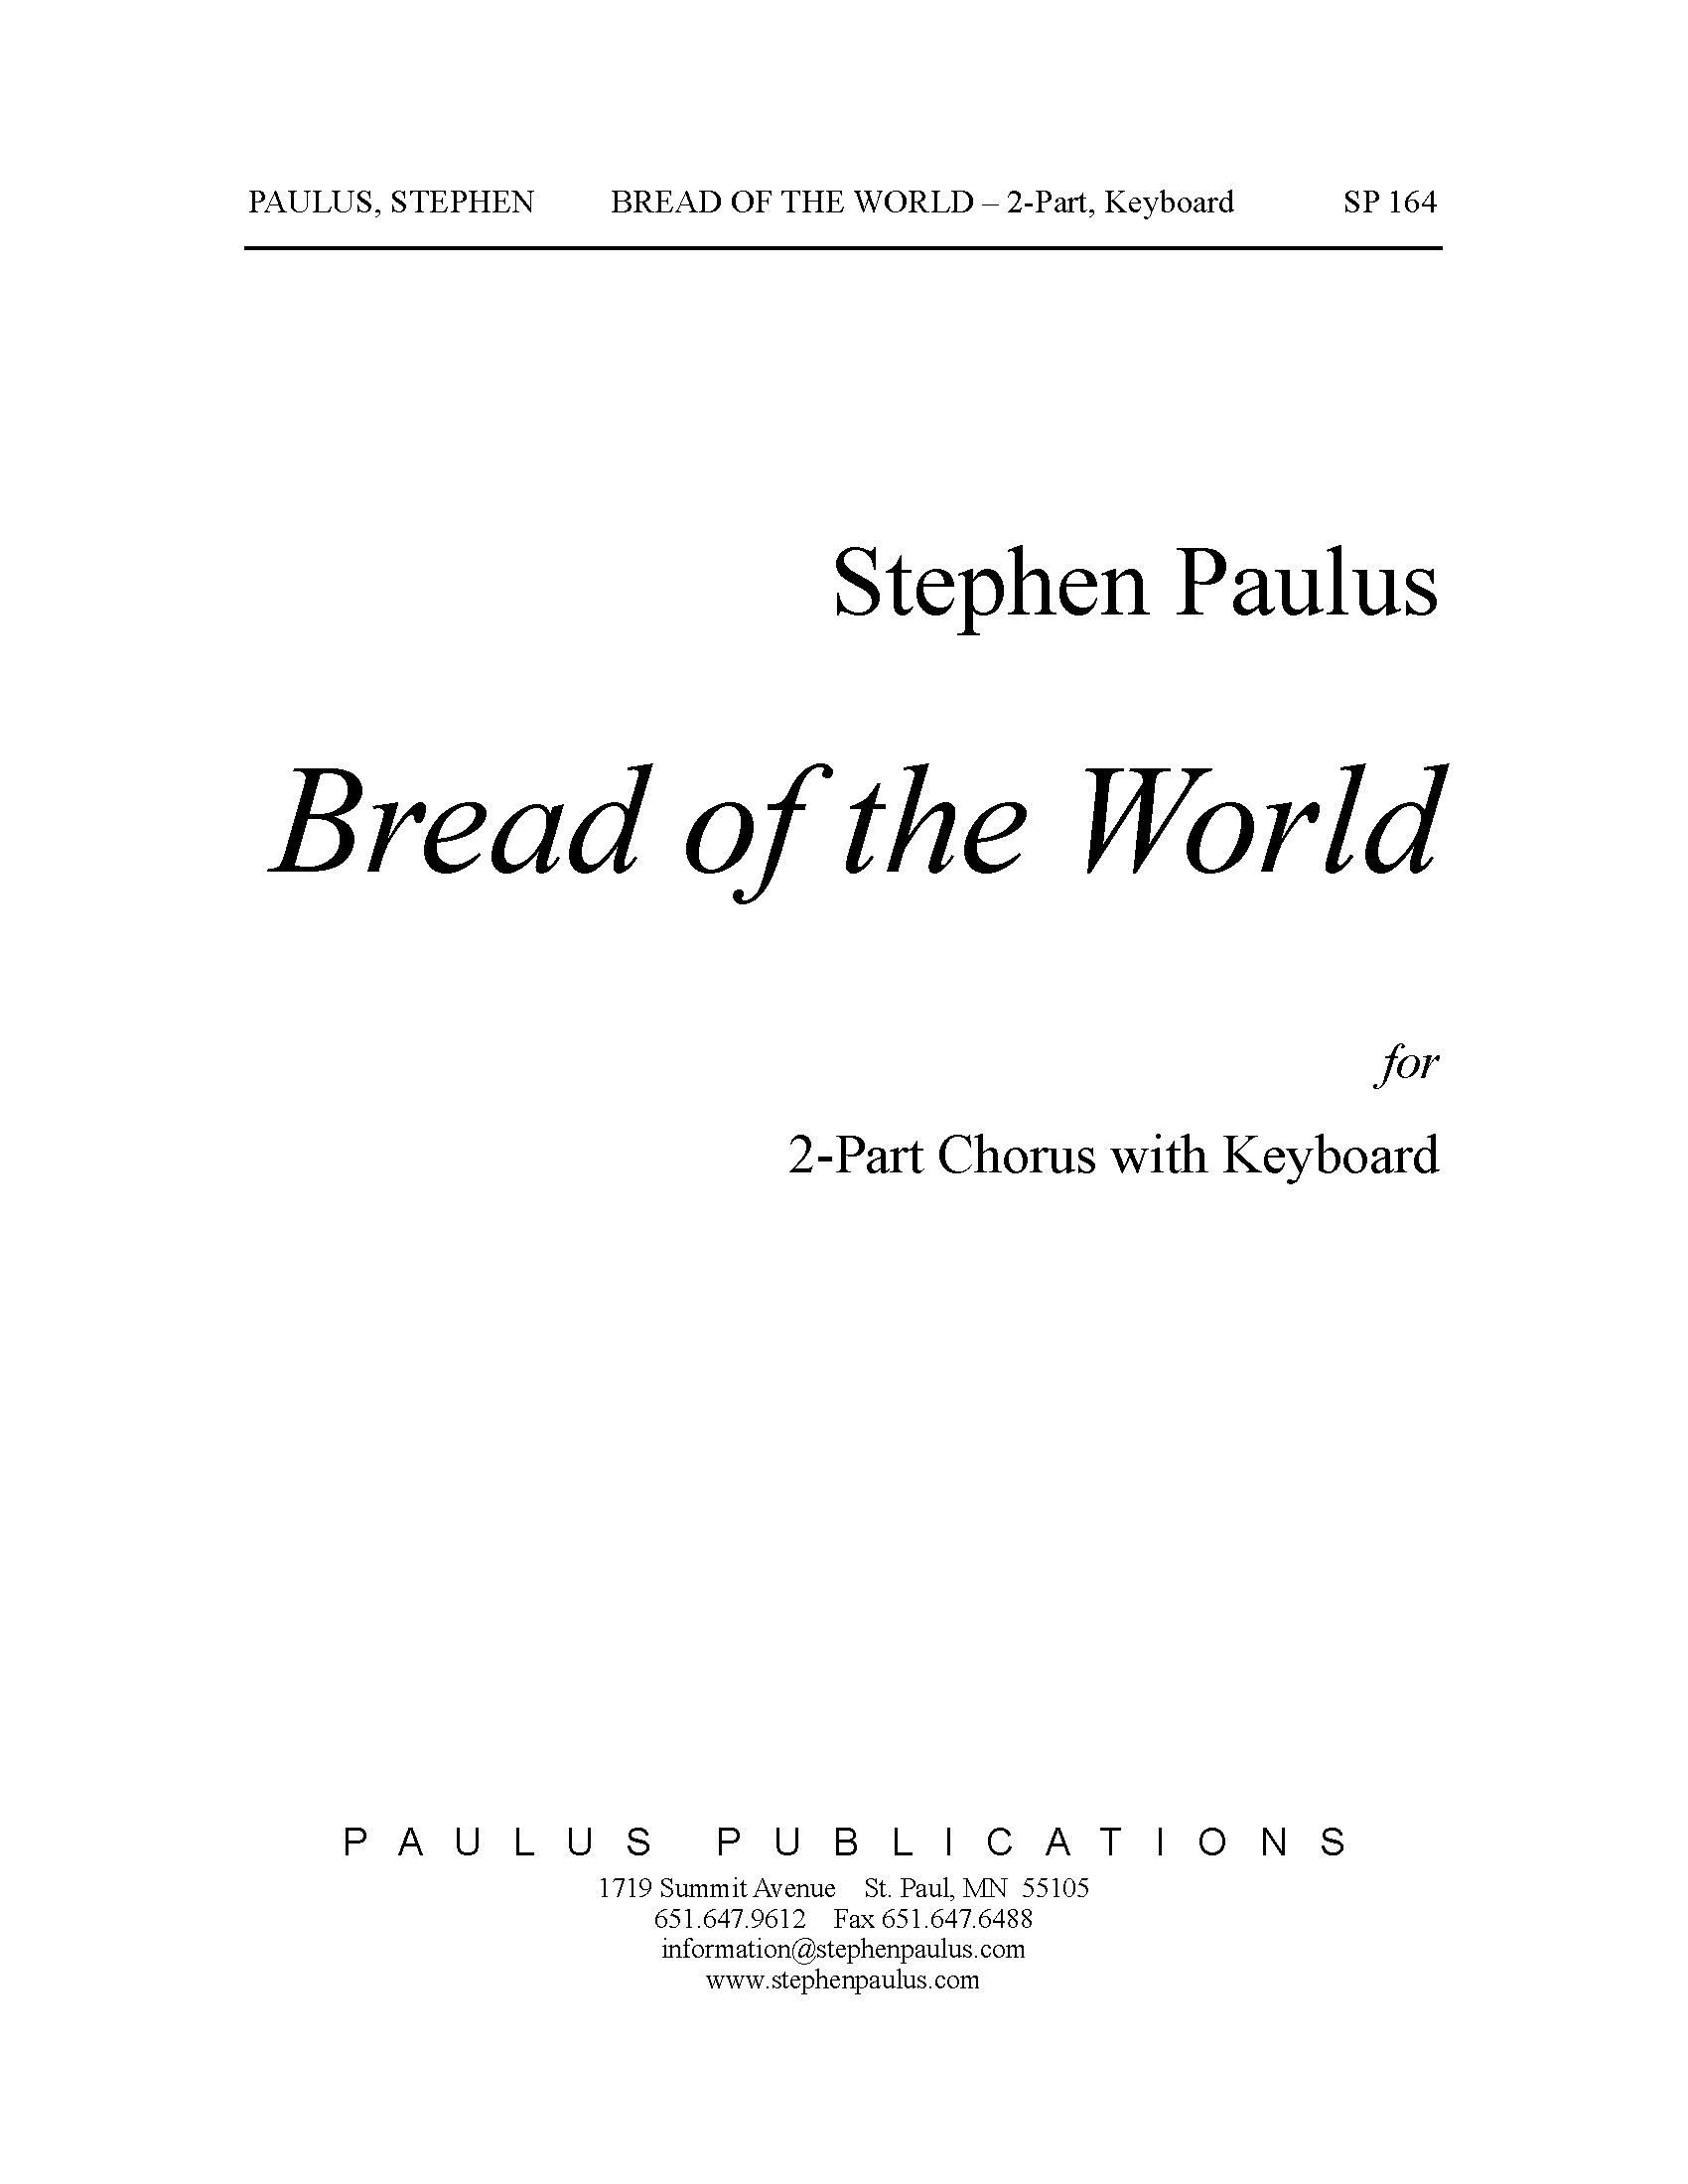 Bread of the World for 2-Part Chorus (any voicing) & Keyboard